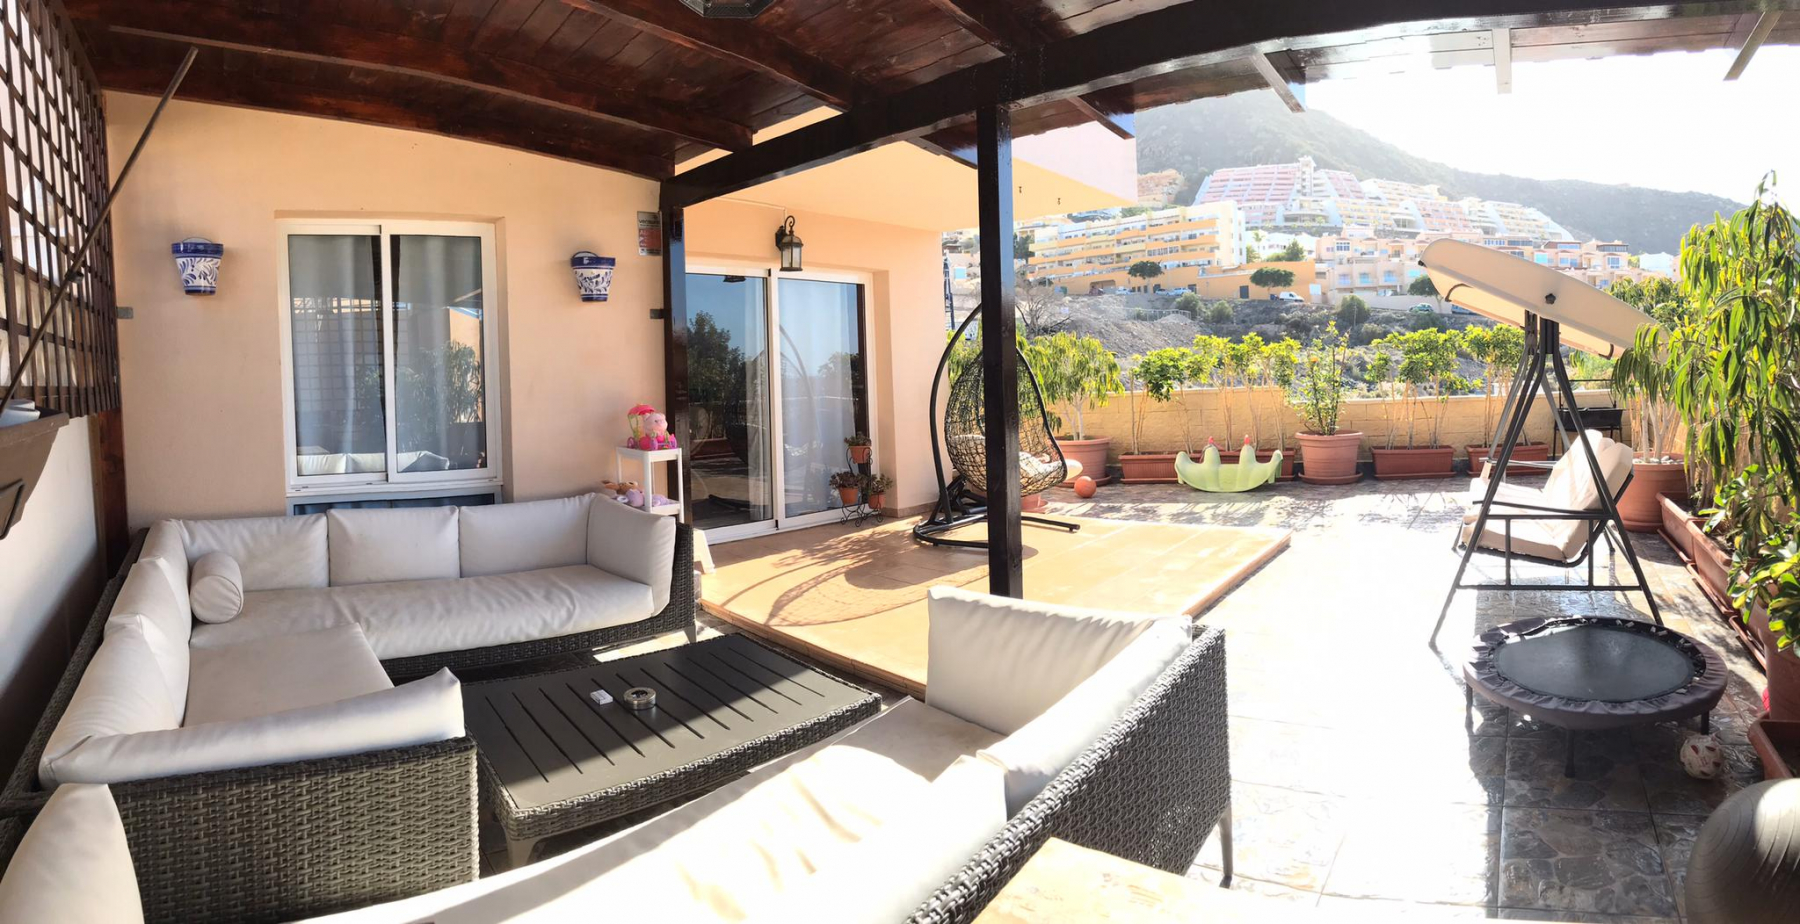 Properties for Sale in Tenerife, Canary Islands, Spain | SylkWayStar Real Estate. 4 bedrooms Townhouse - El Madroñal . Image-26206